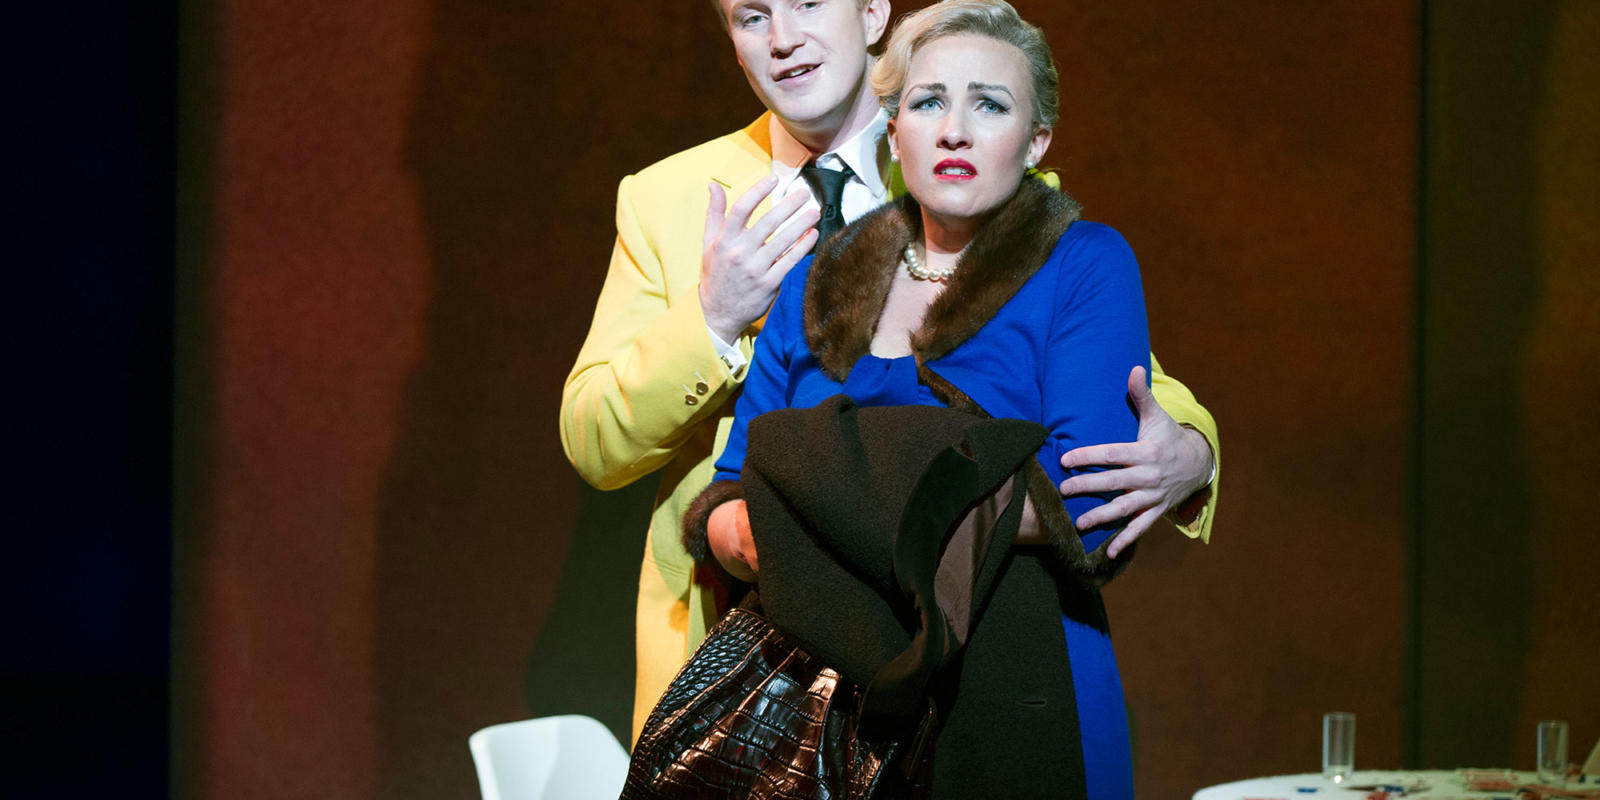 James Laing and Sasha Cooke singing together on stage (c) Richard Hubert Smith